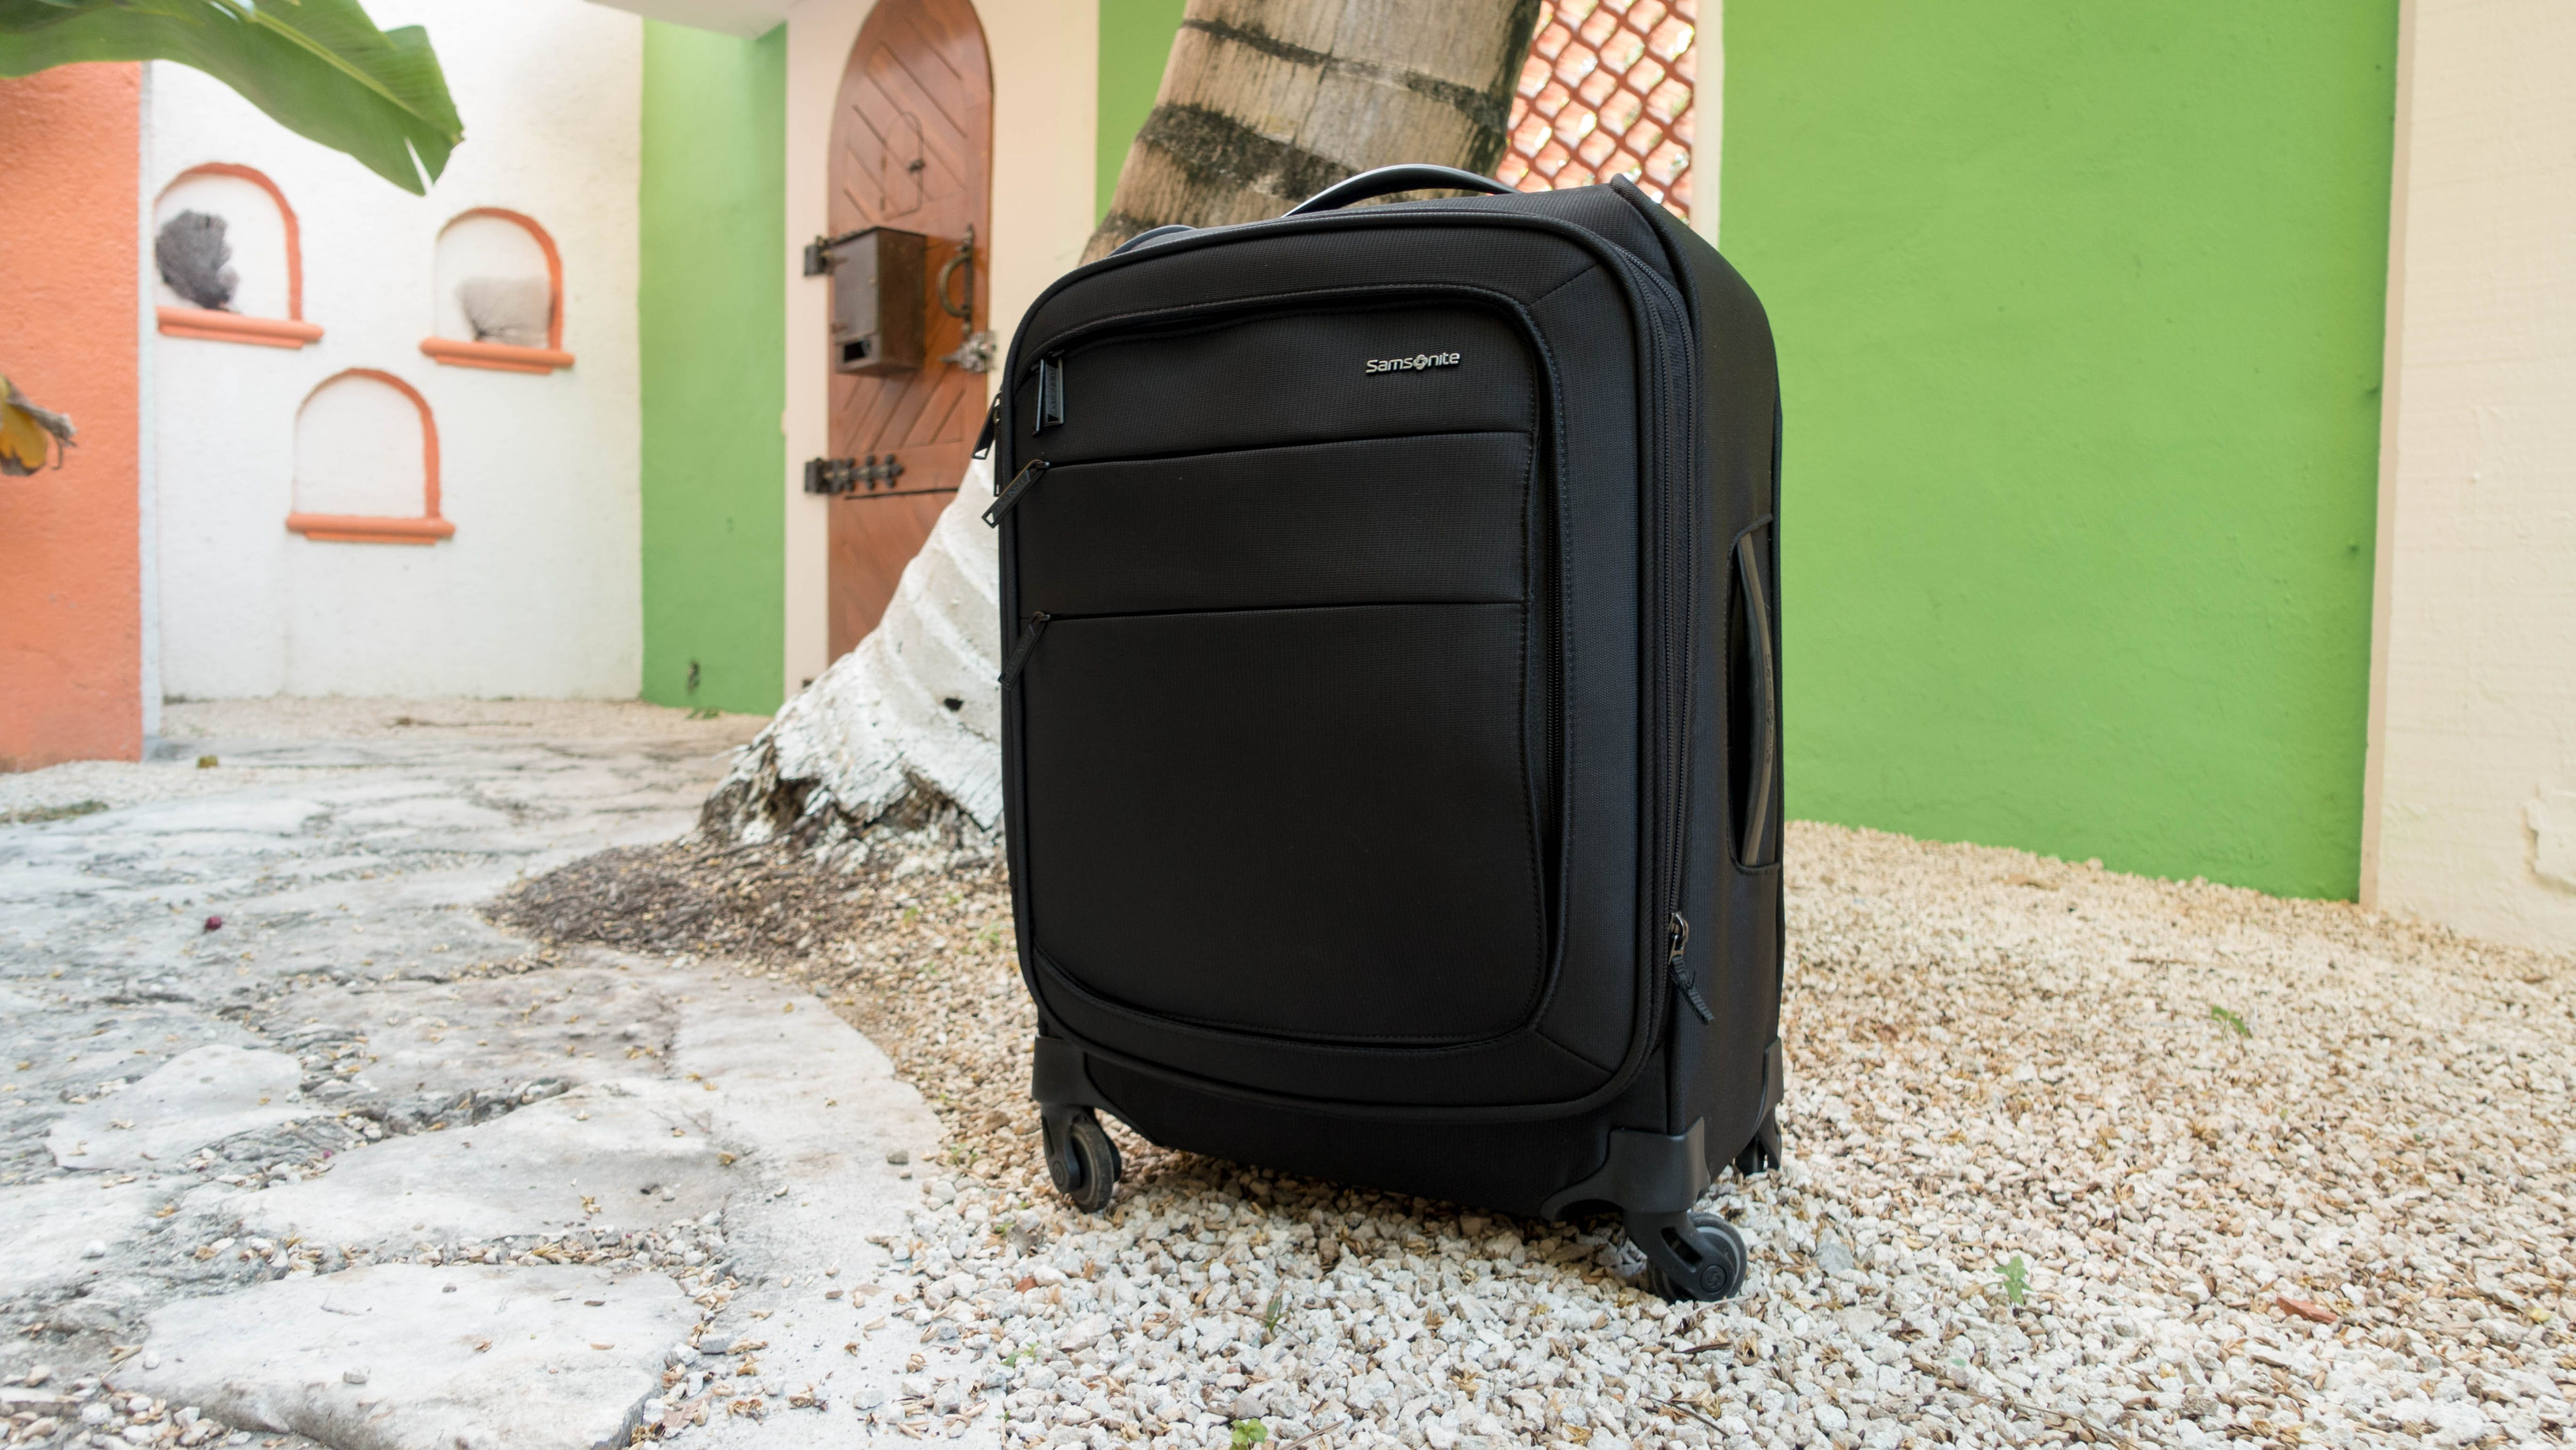 Samsonite is having a massive sale on all luggage right now